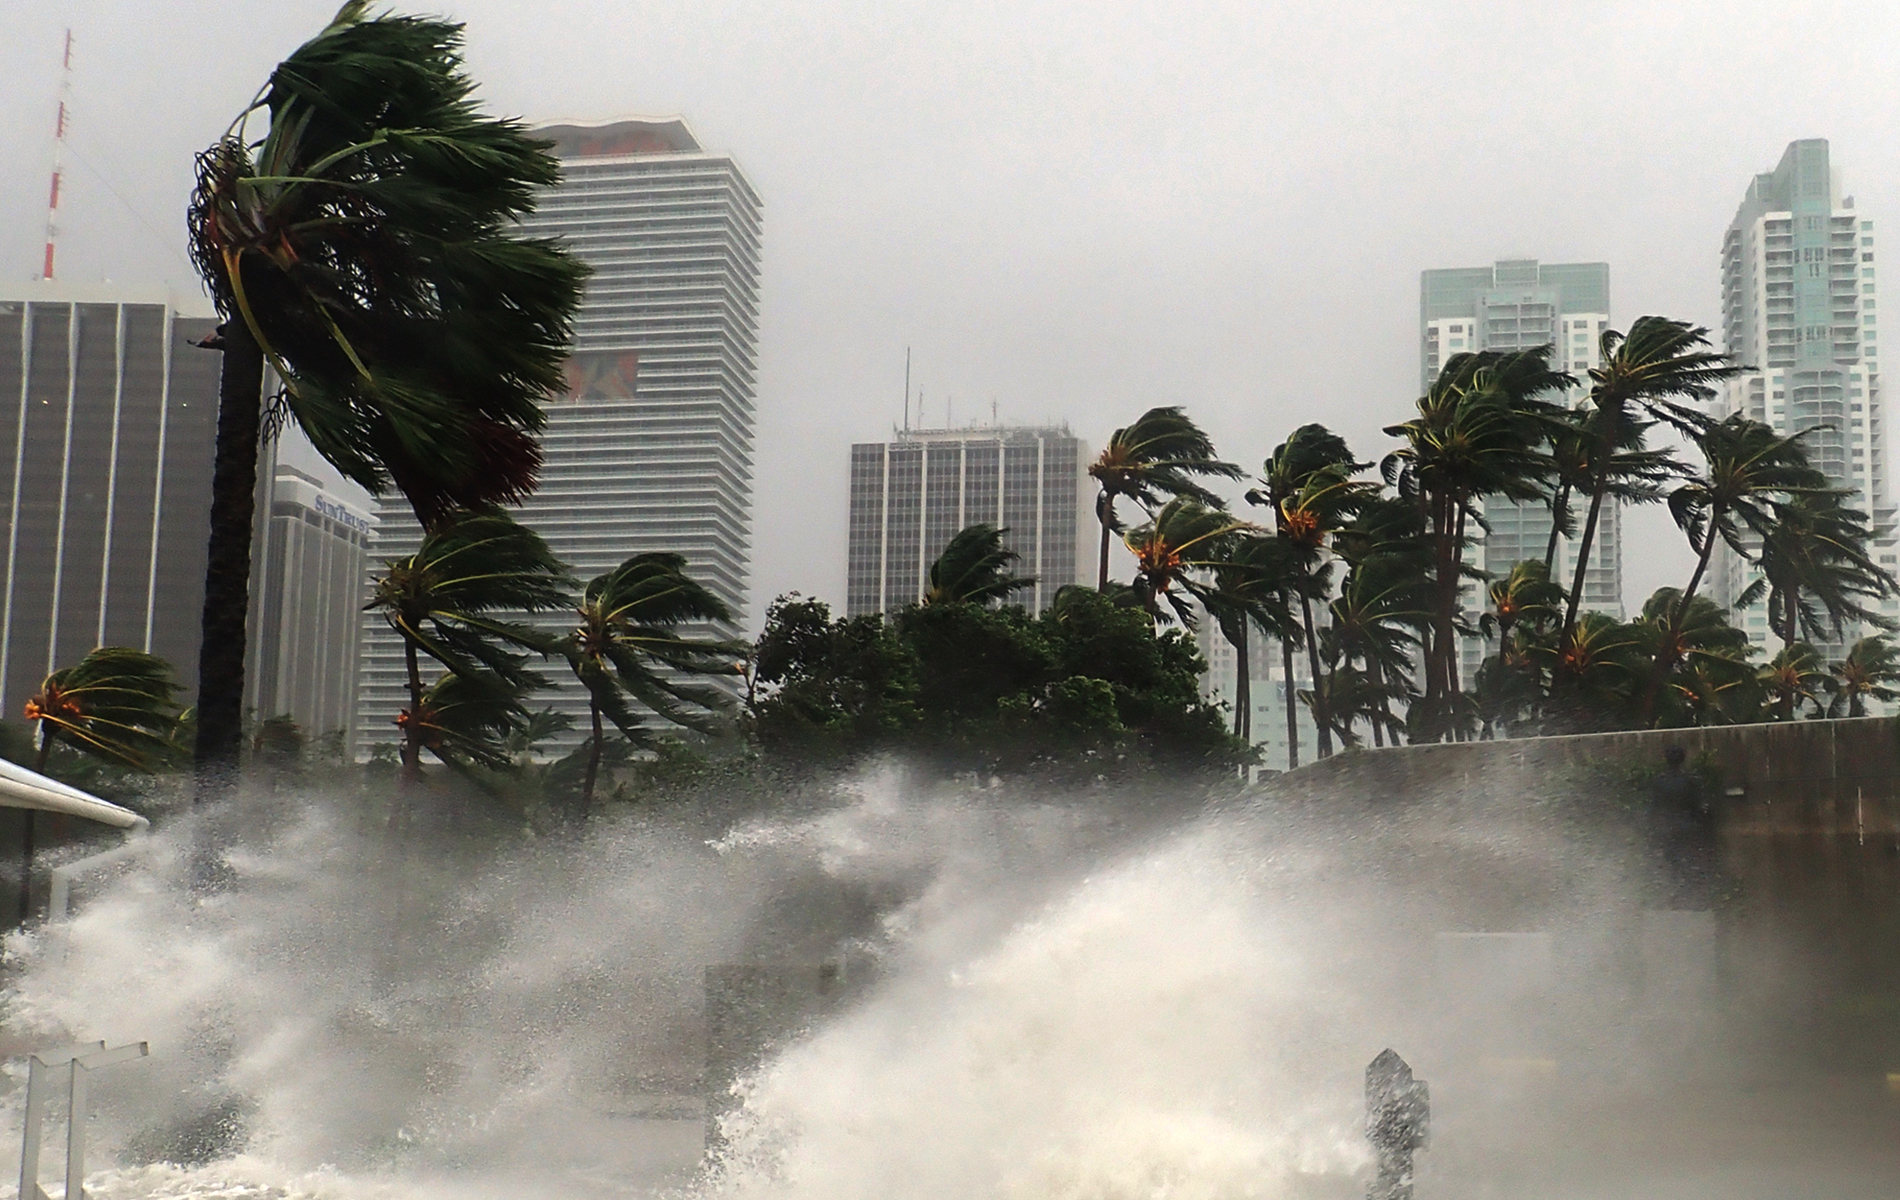 Hurricane impacts being felt along the Miami coastline. Waves crashing onshore, palm trees blowing in high winds.